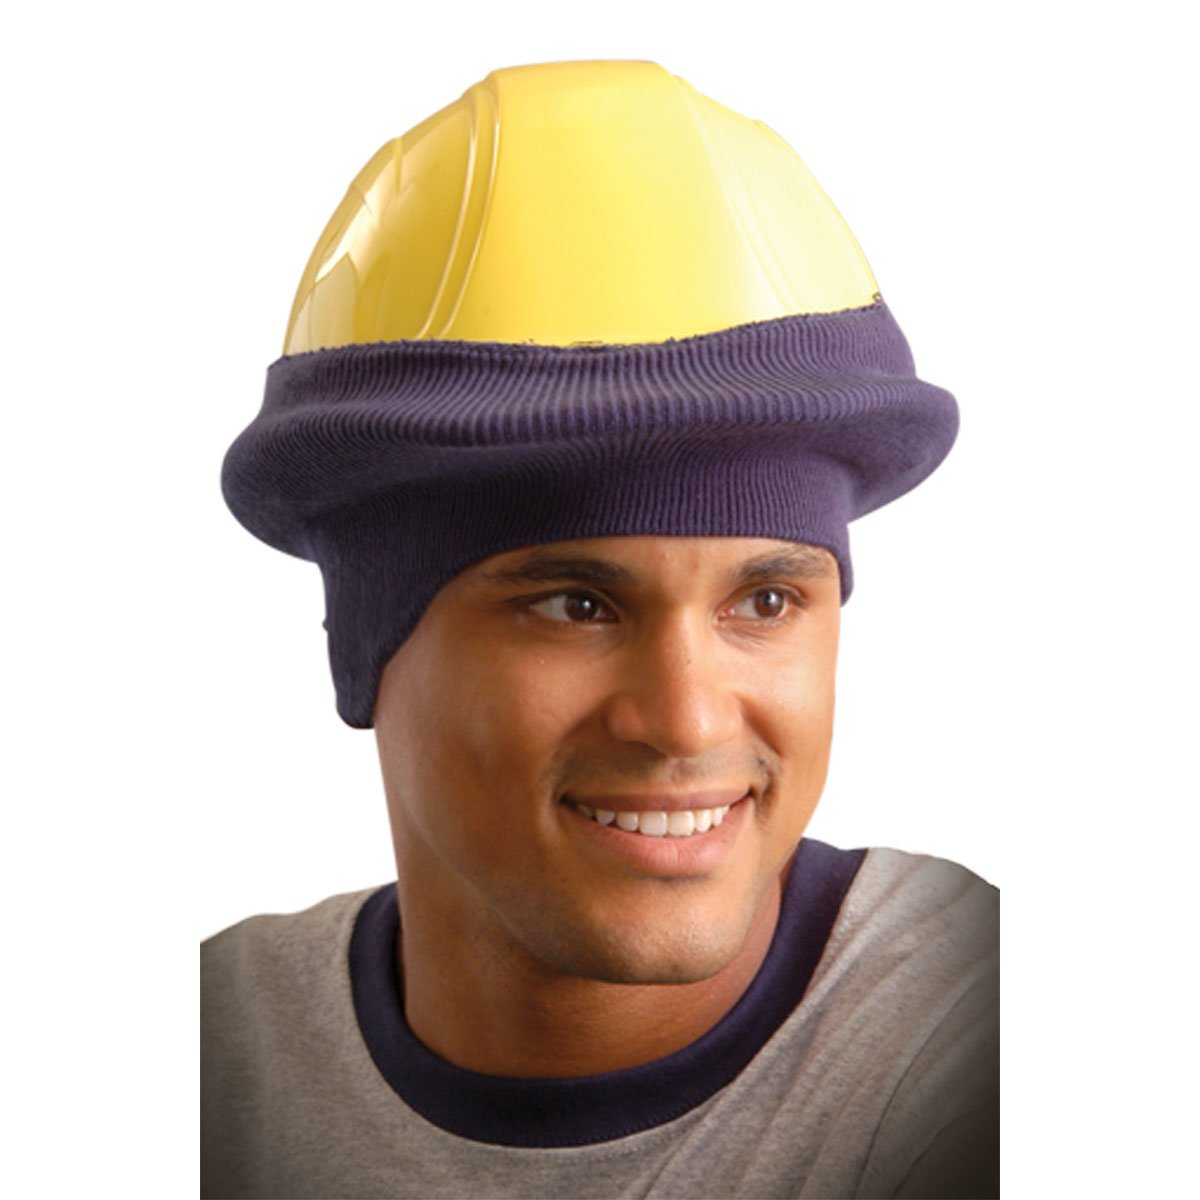 Stay Warm - Classic Hard Hat Tube Liner - One Size Fits All - NAVY BLUE-24-PACK